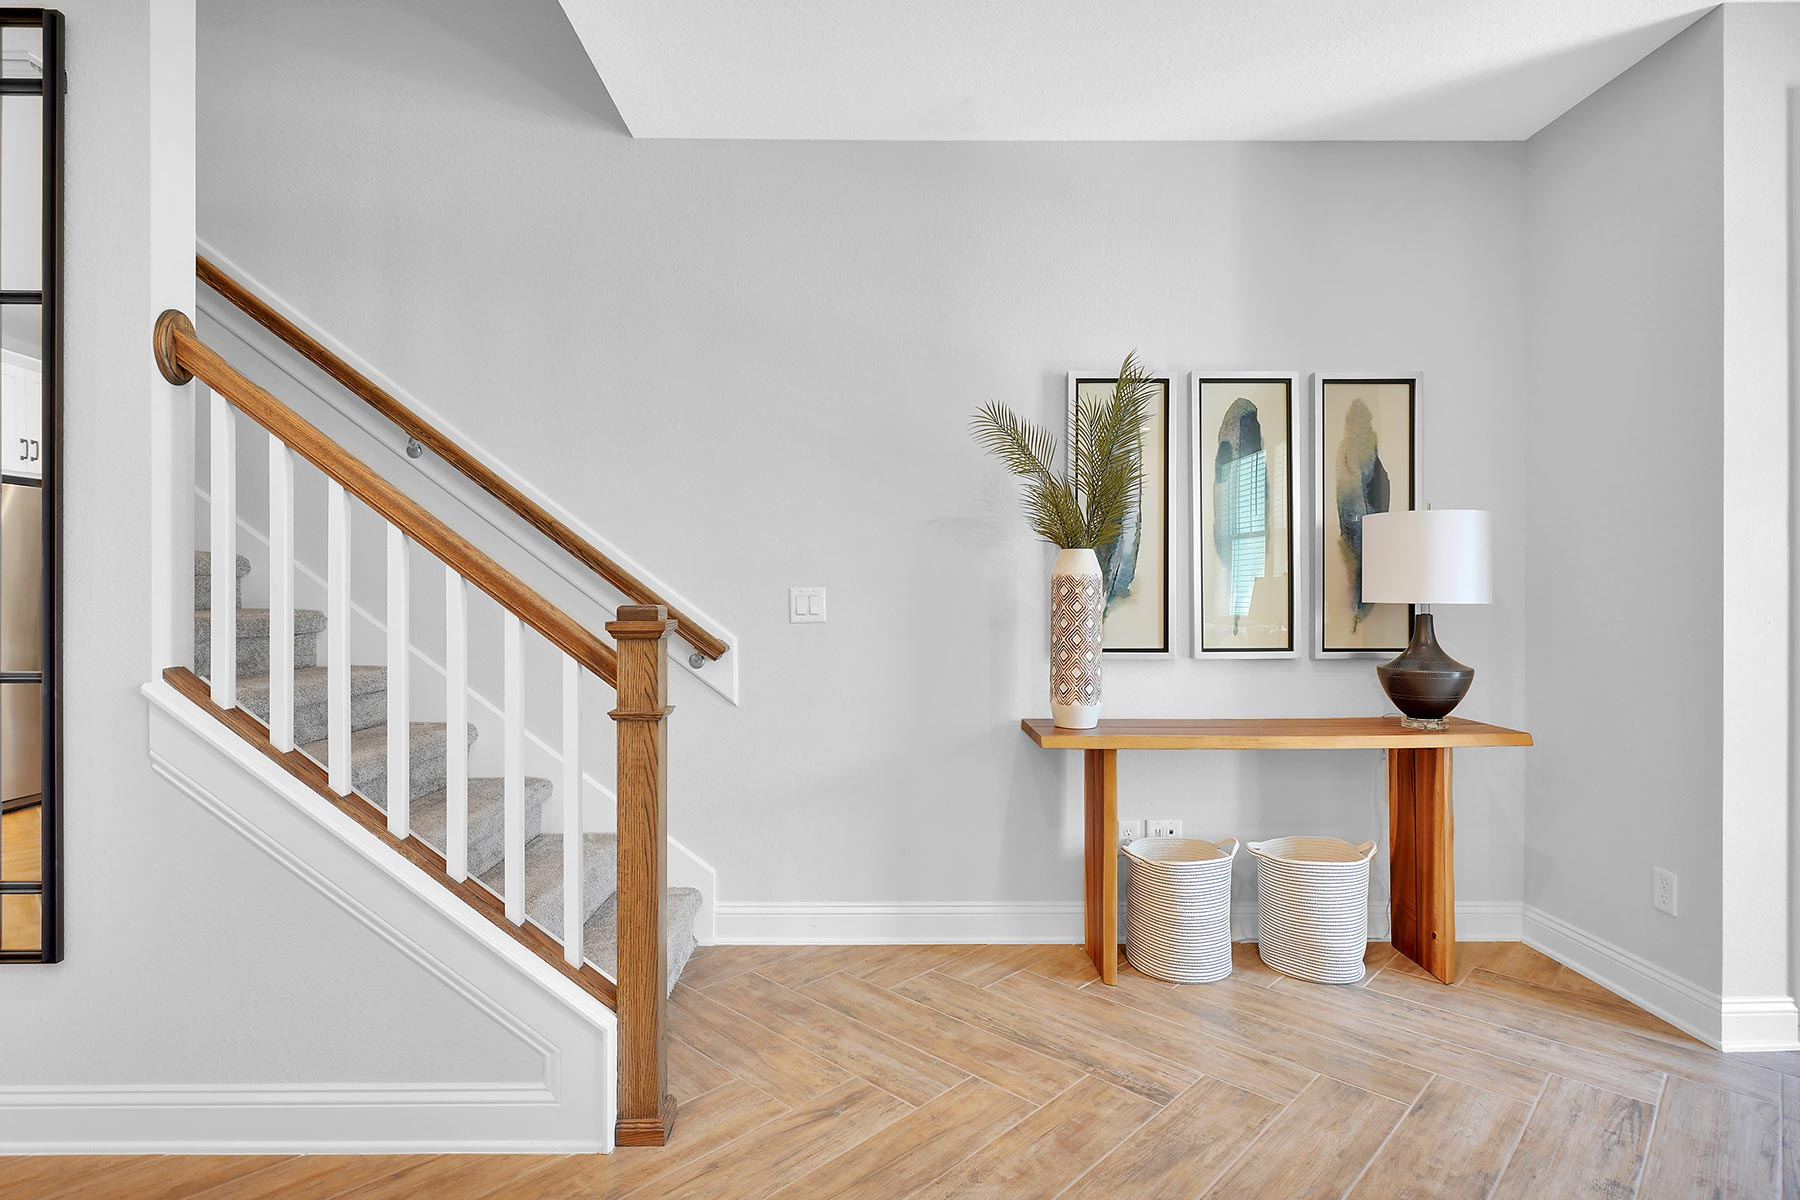 Rialta Plan Foyer at Pablo Cove in Jacksonville Florida by Mattamy Homes